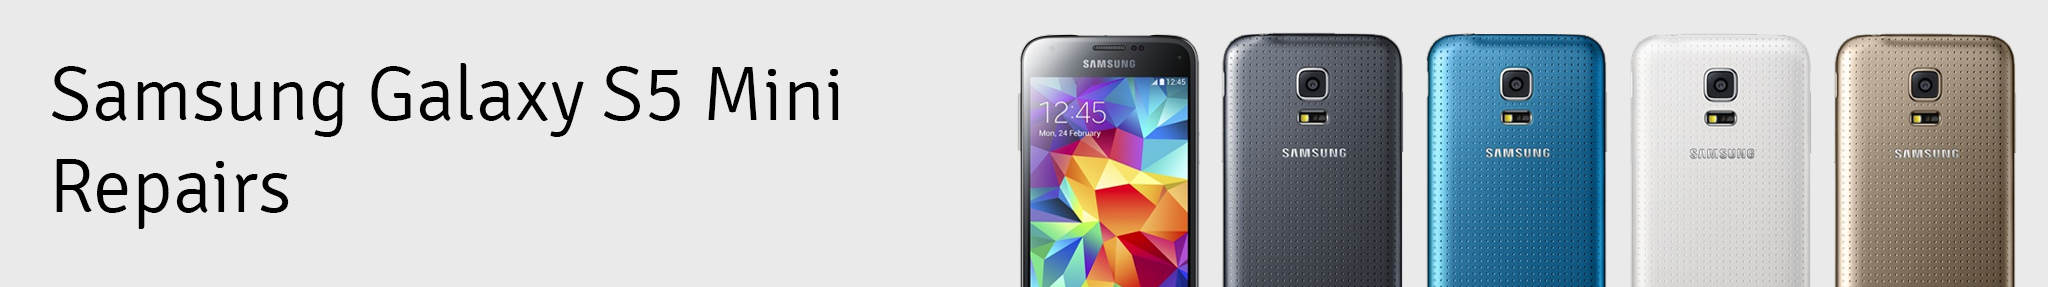 Samsung Galaxy S5 Mini Repair